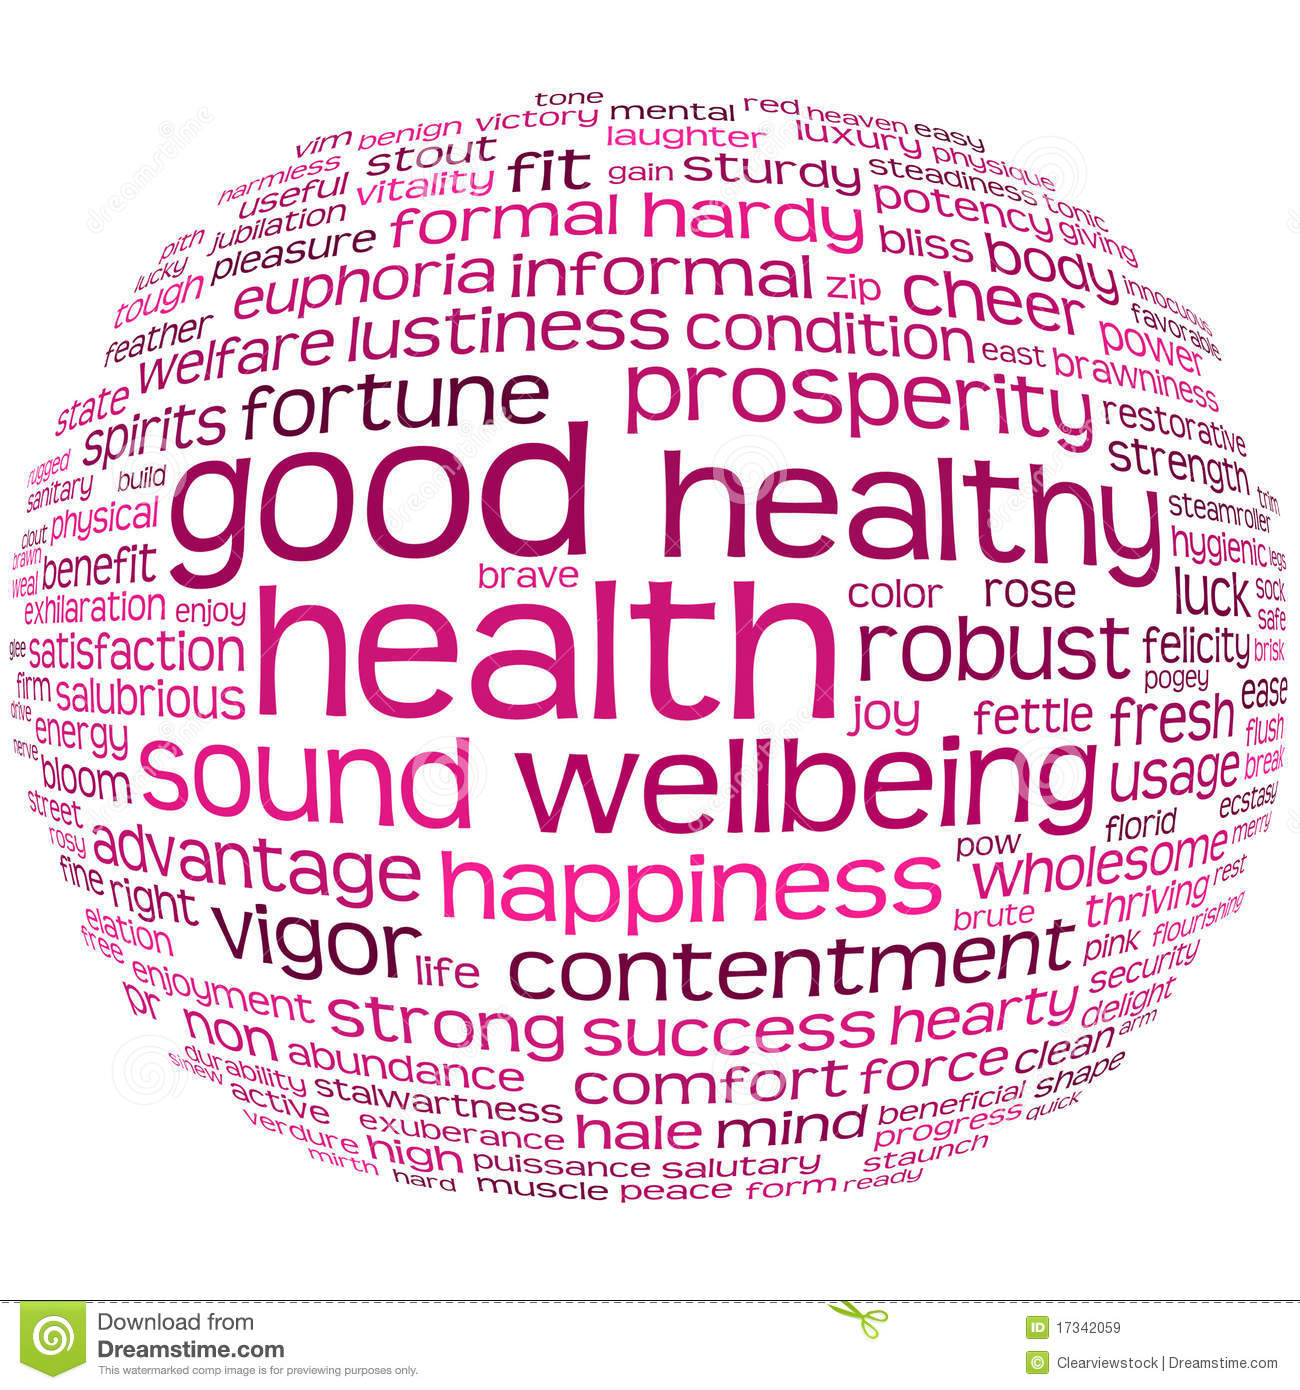 What is 'good' healthcare?